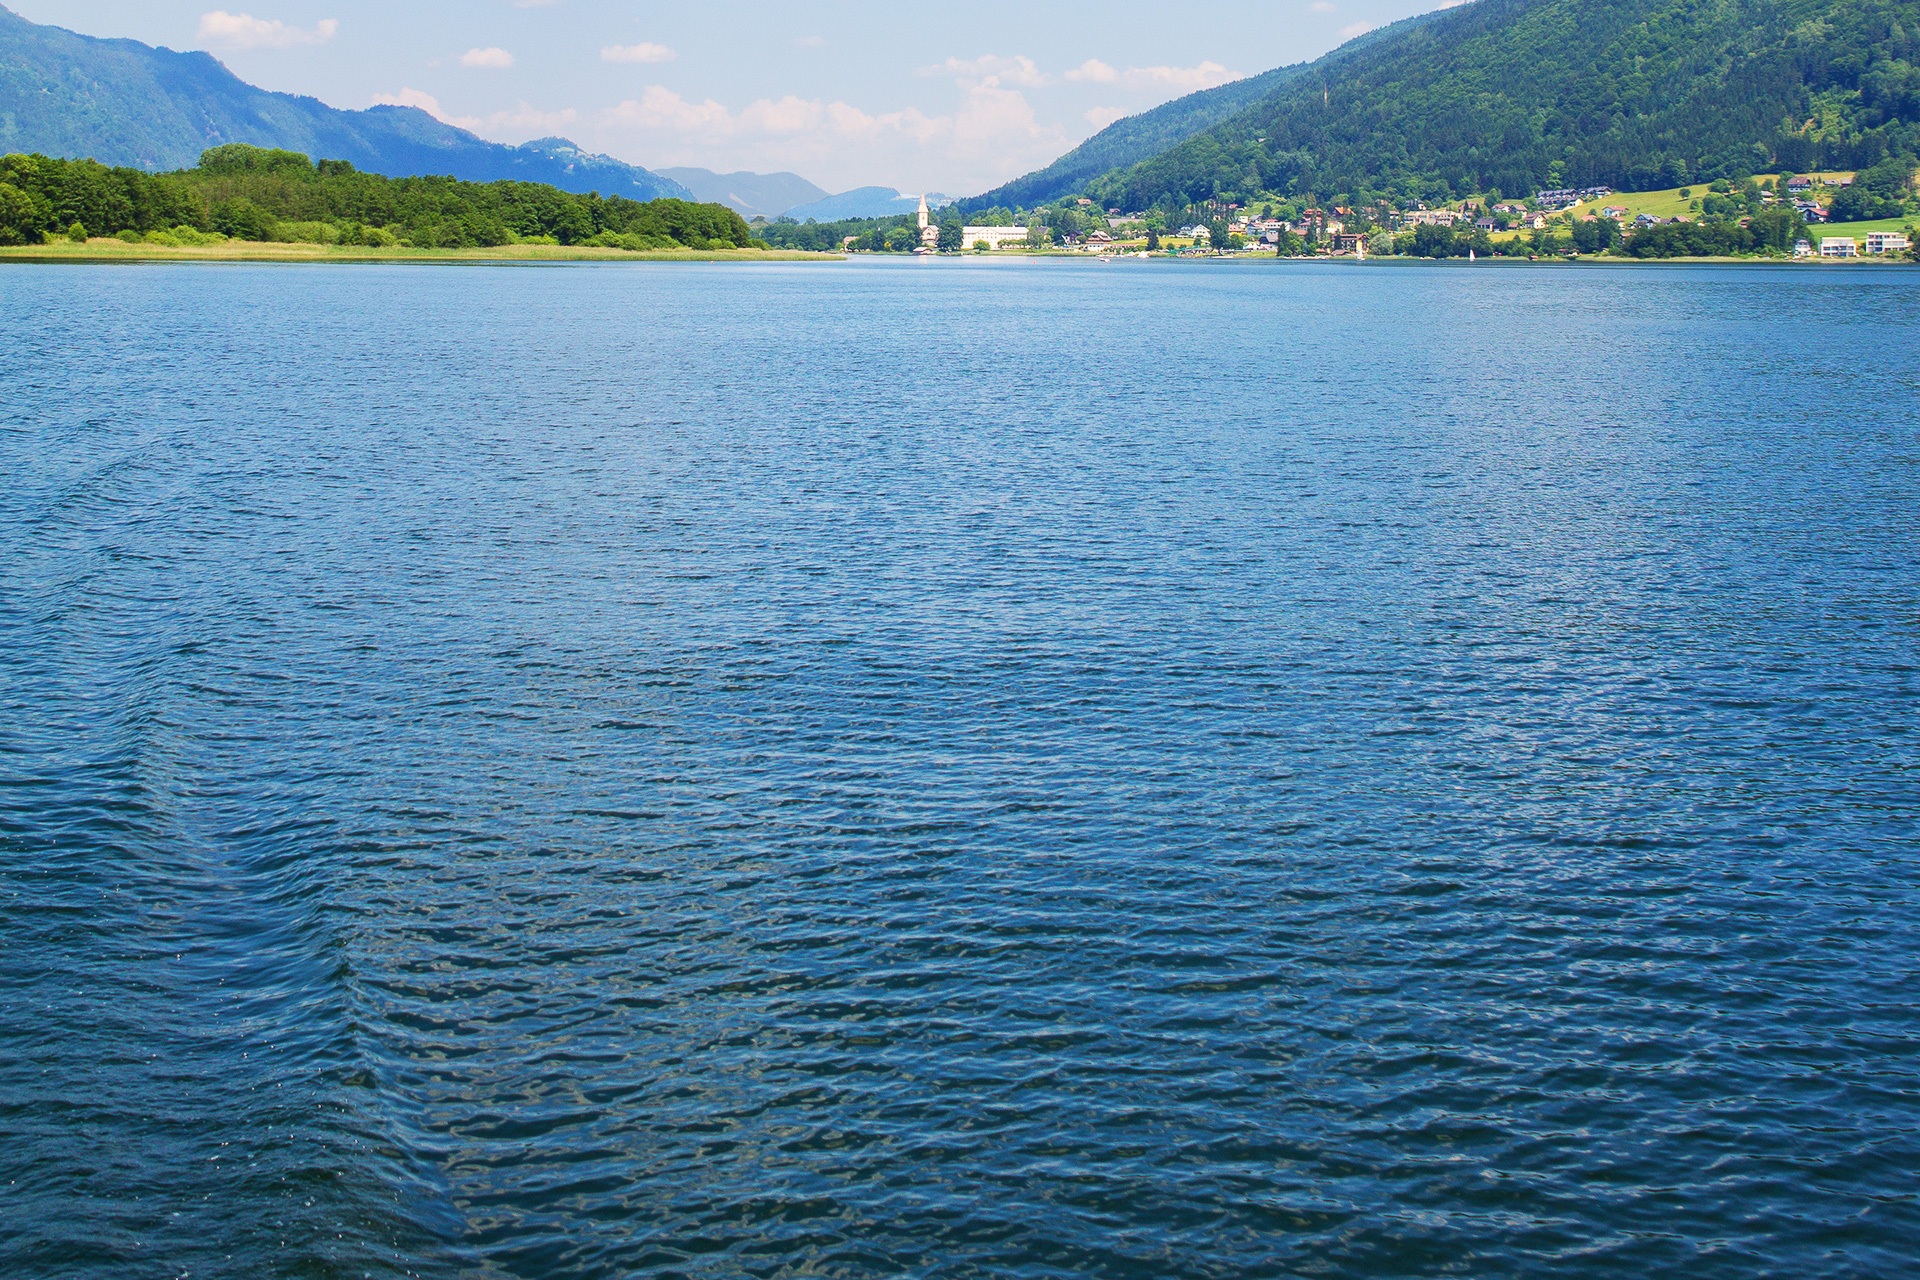 IMMOBILIEN AM OSSIACHERSEE